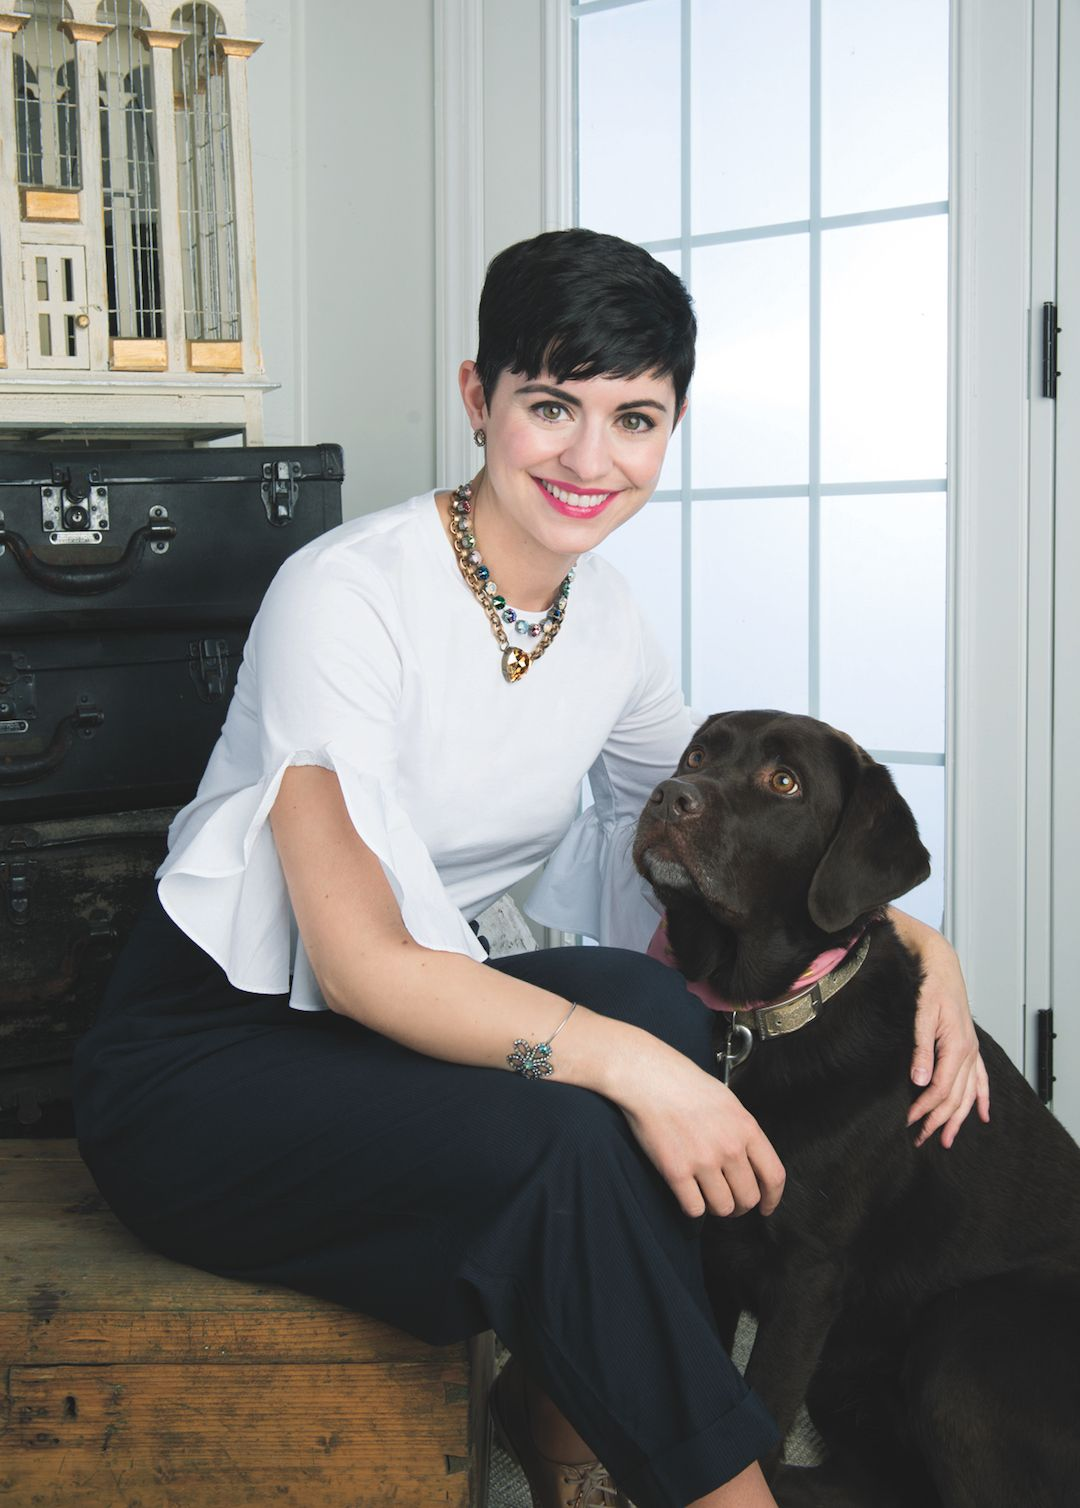 Posing With My Dog in The Sabika Spring Look Book is part of Posing With My Dog In The Sabika Spring Look Book - Posing With My Dog in The Sabika Spring Look Book  Check out Lucy and I modeling in a jewelry catalog  I linked up our Spring looks!